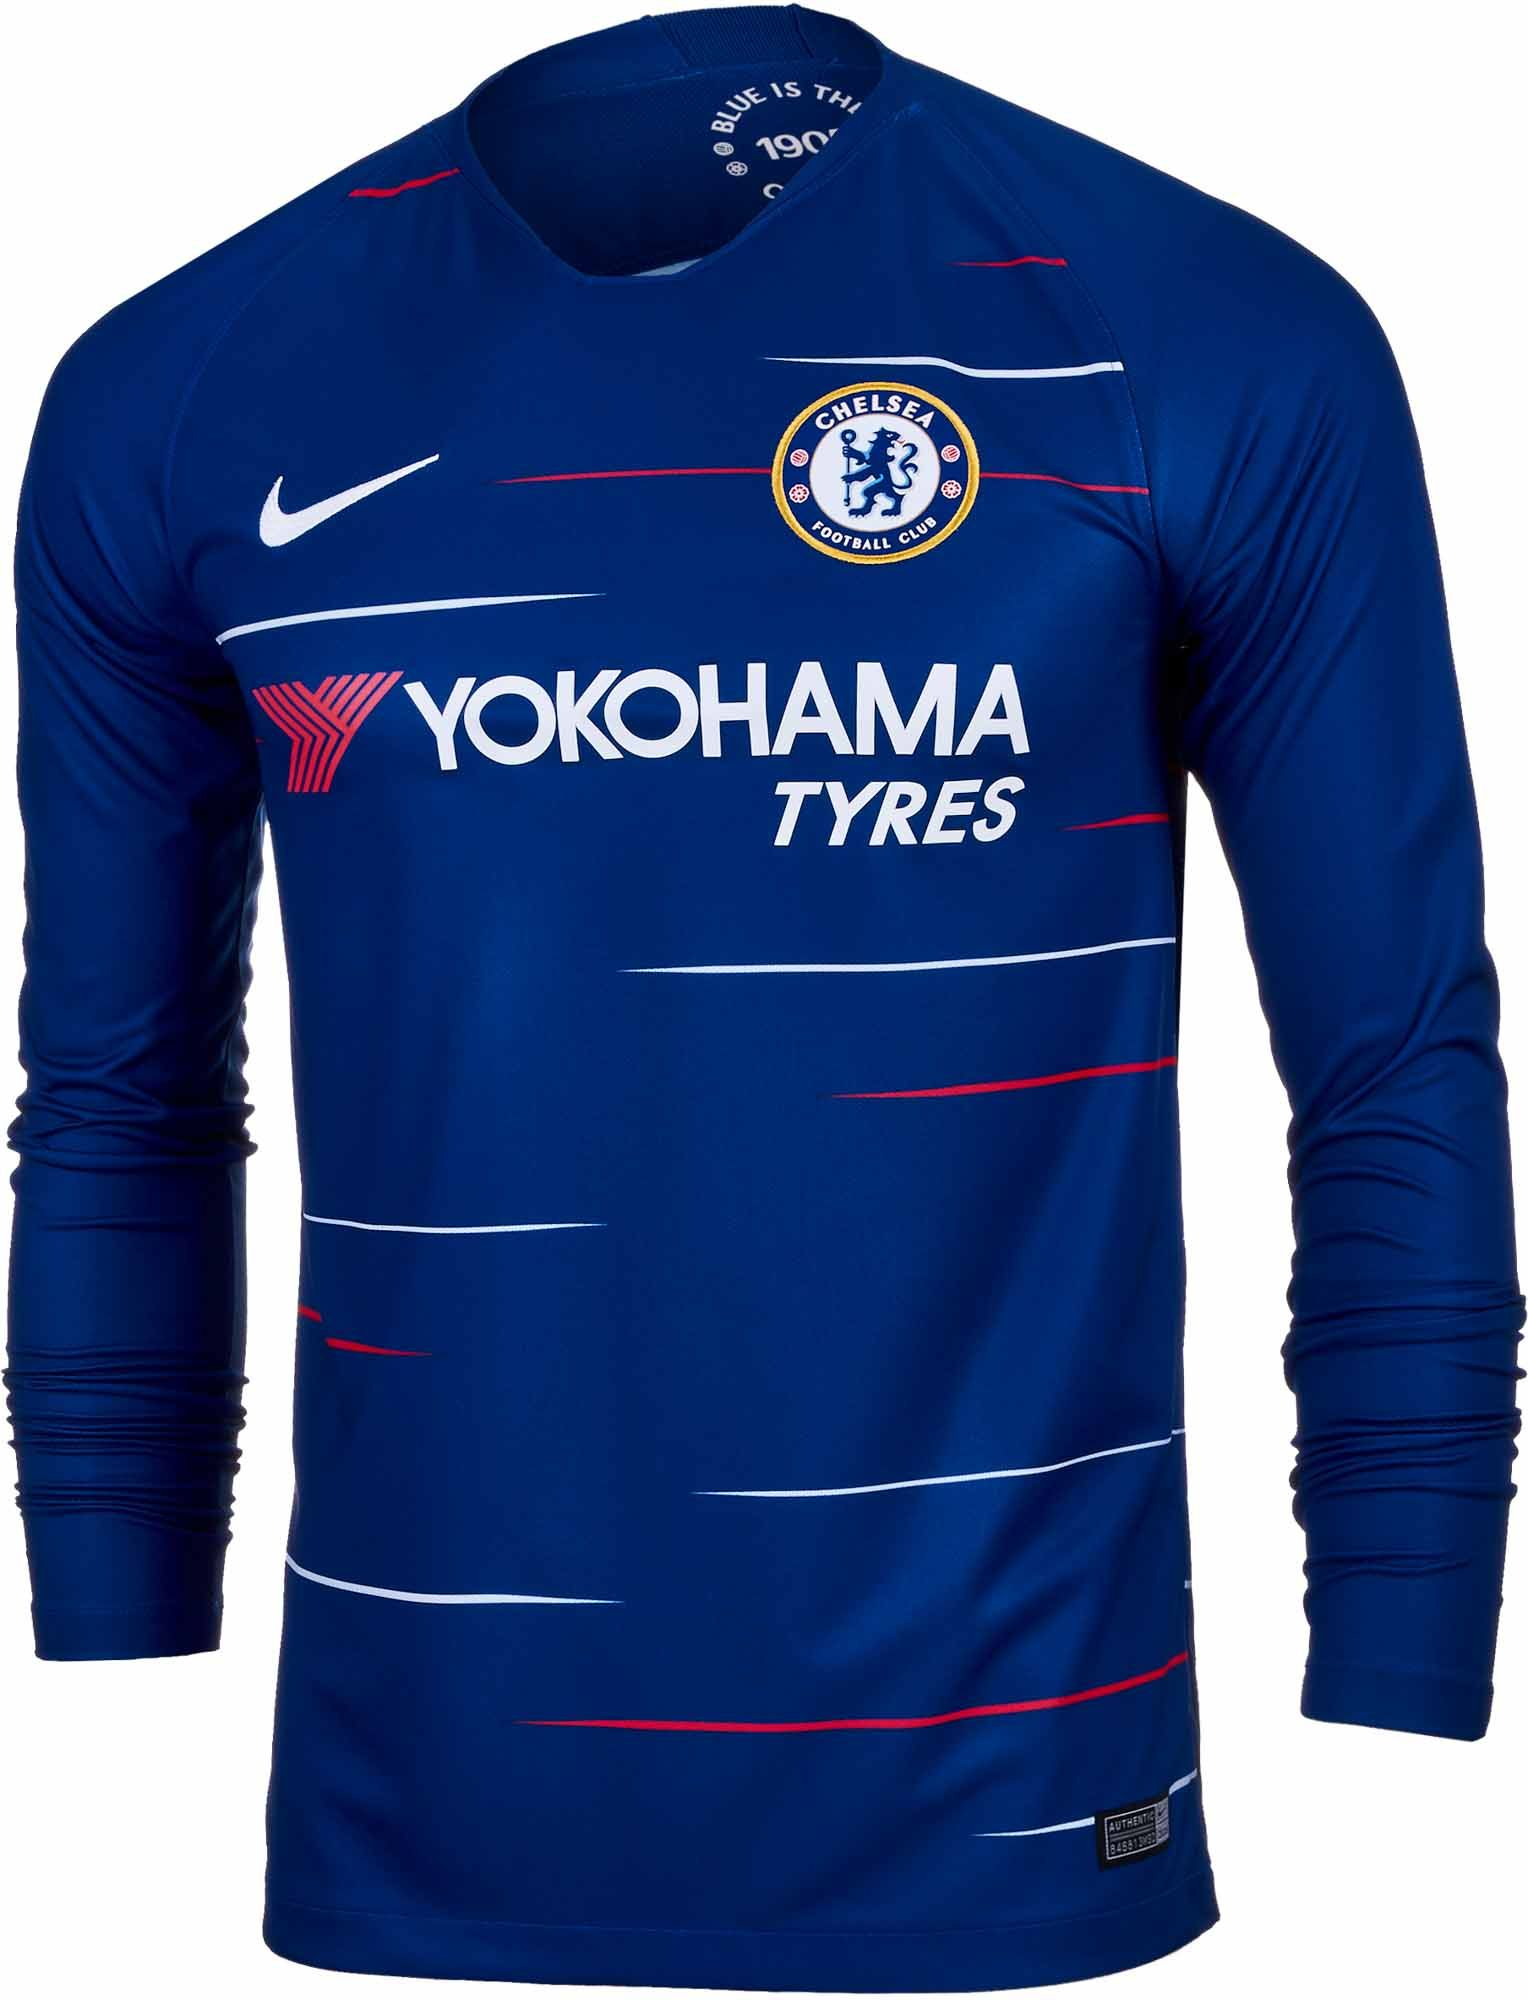 2018 19 adidas Chelsea FC L S Home Jersey. Hot at soccerpro.com right now.  Get yours today. Encuentra este Pin y muchos más en CAMISETAS FUTBOL ... f98d4466e16